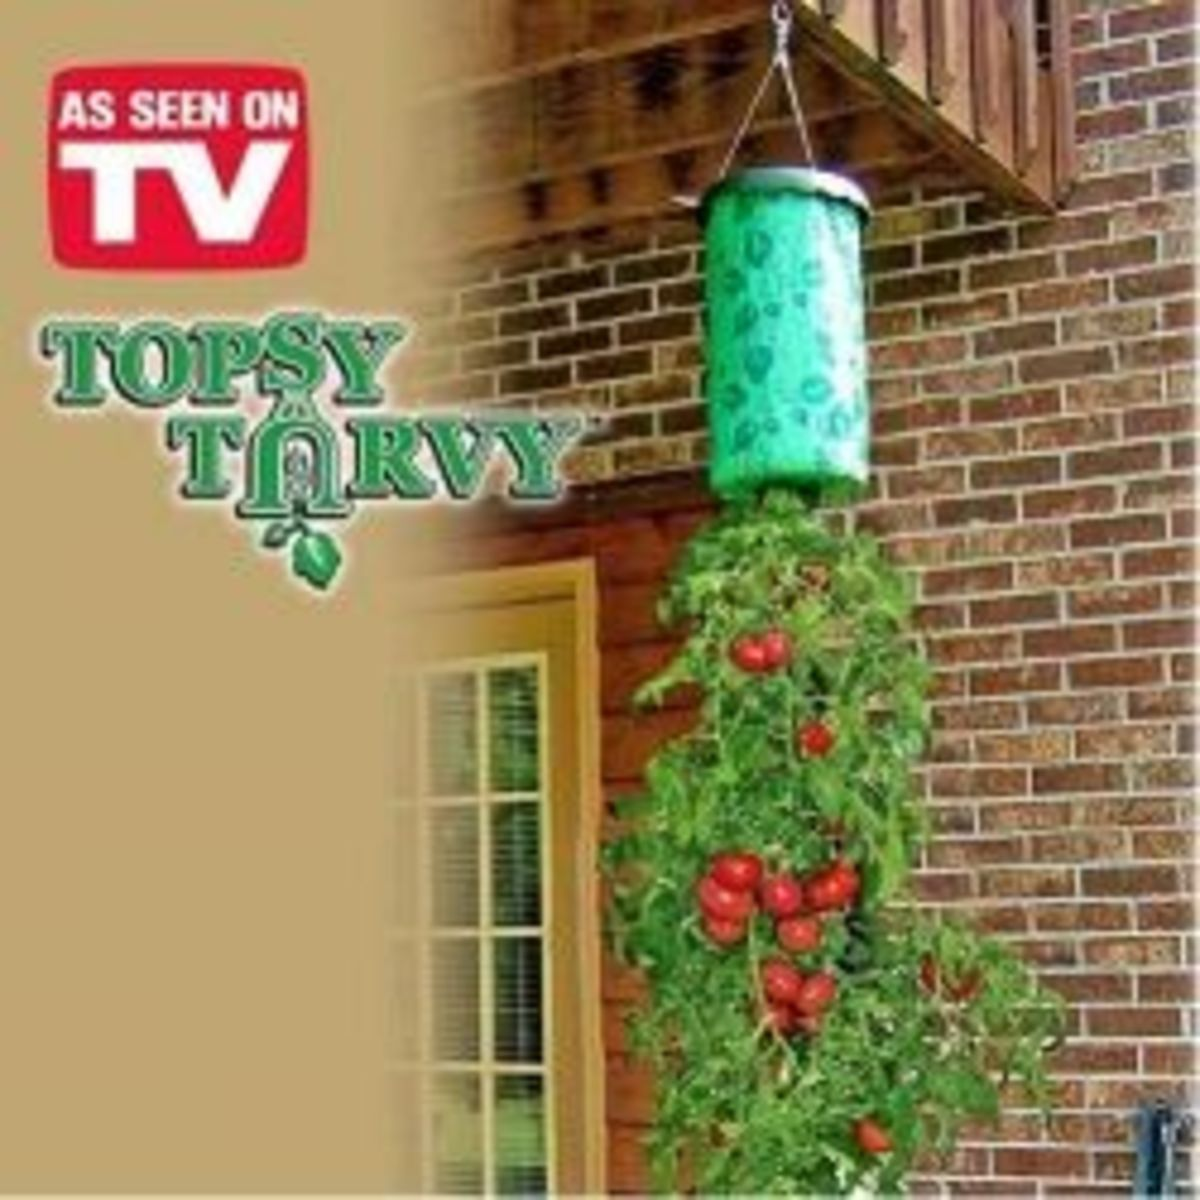 make-your-own-topsy-turvy-tomatoes